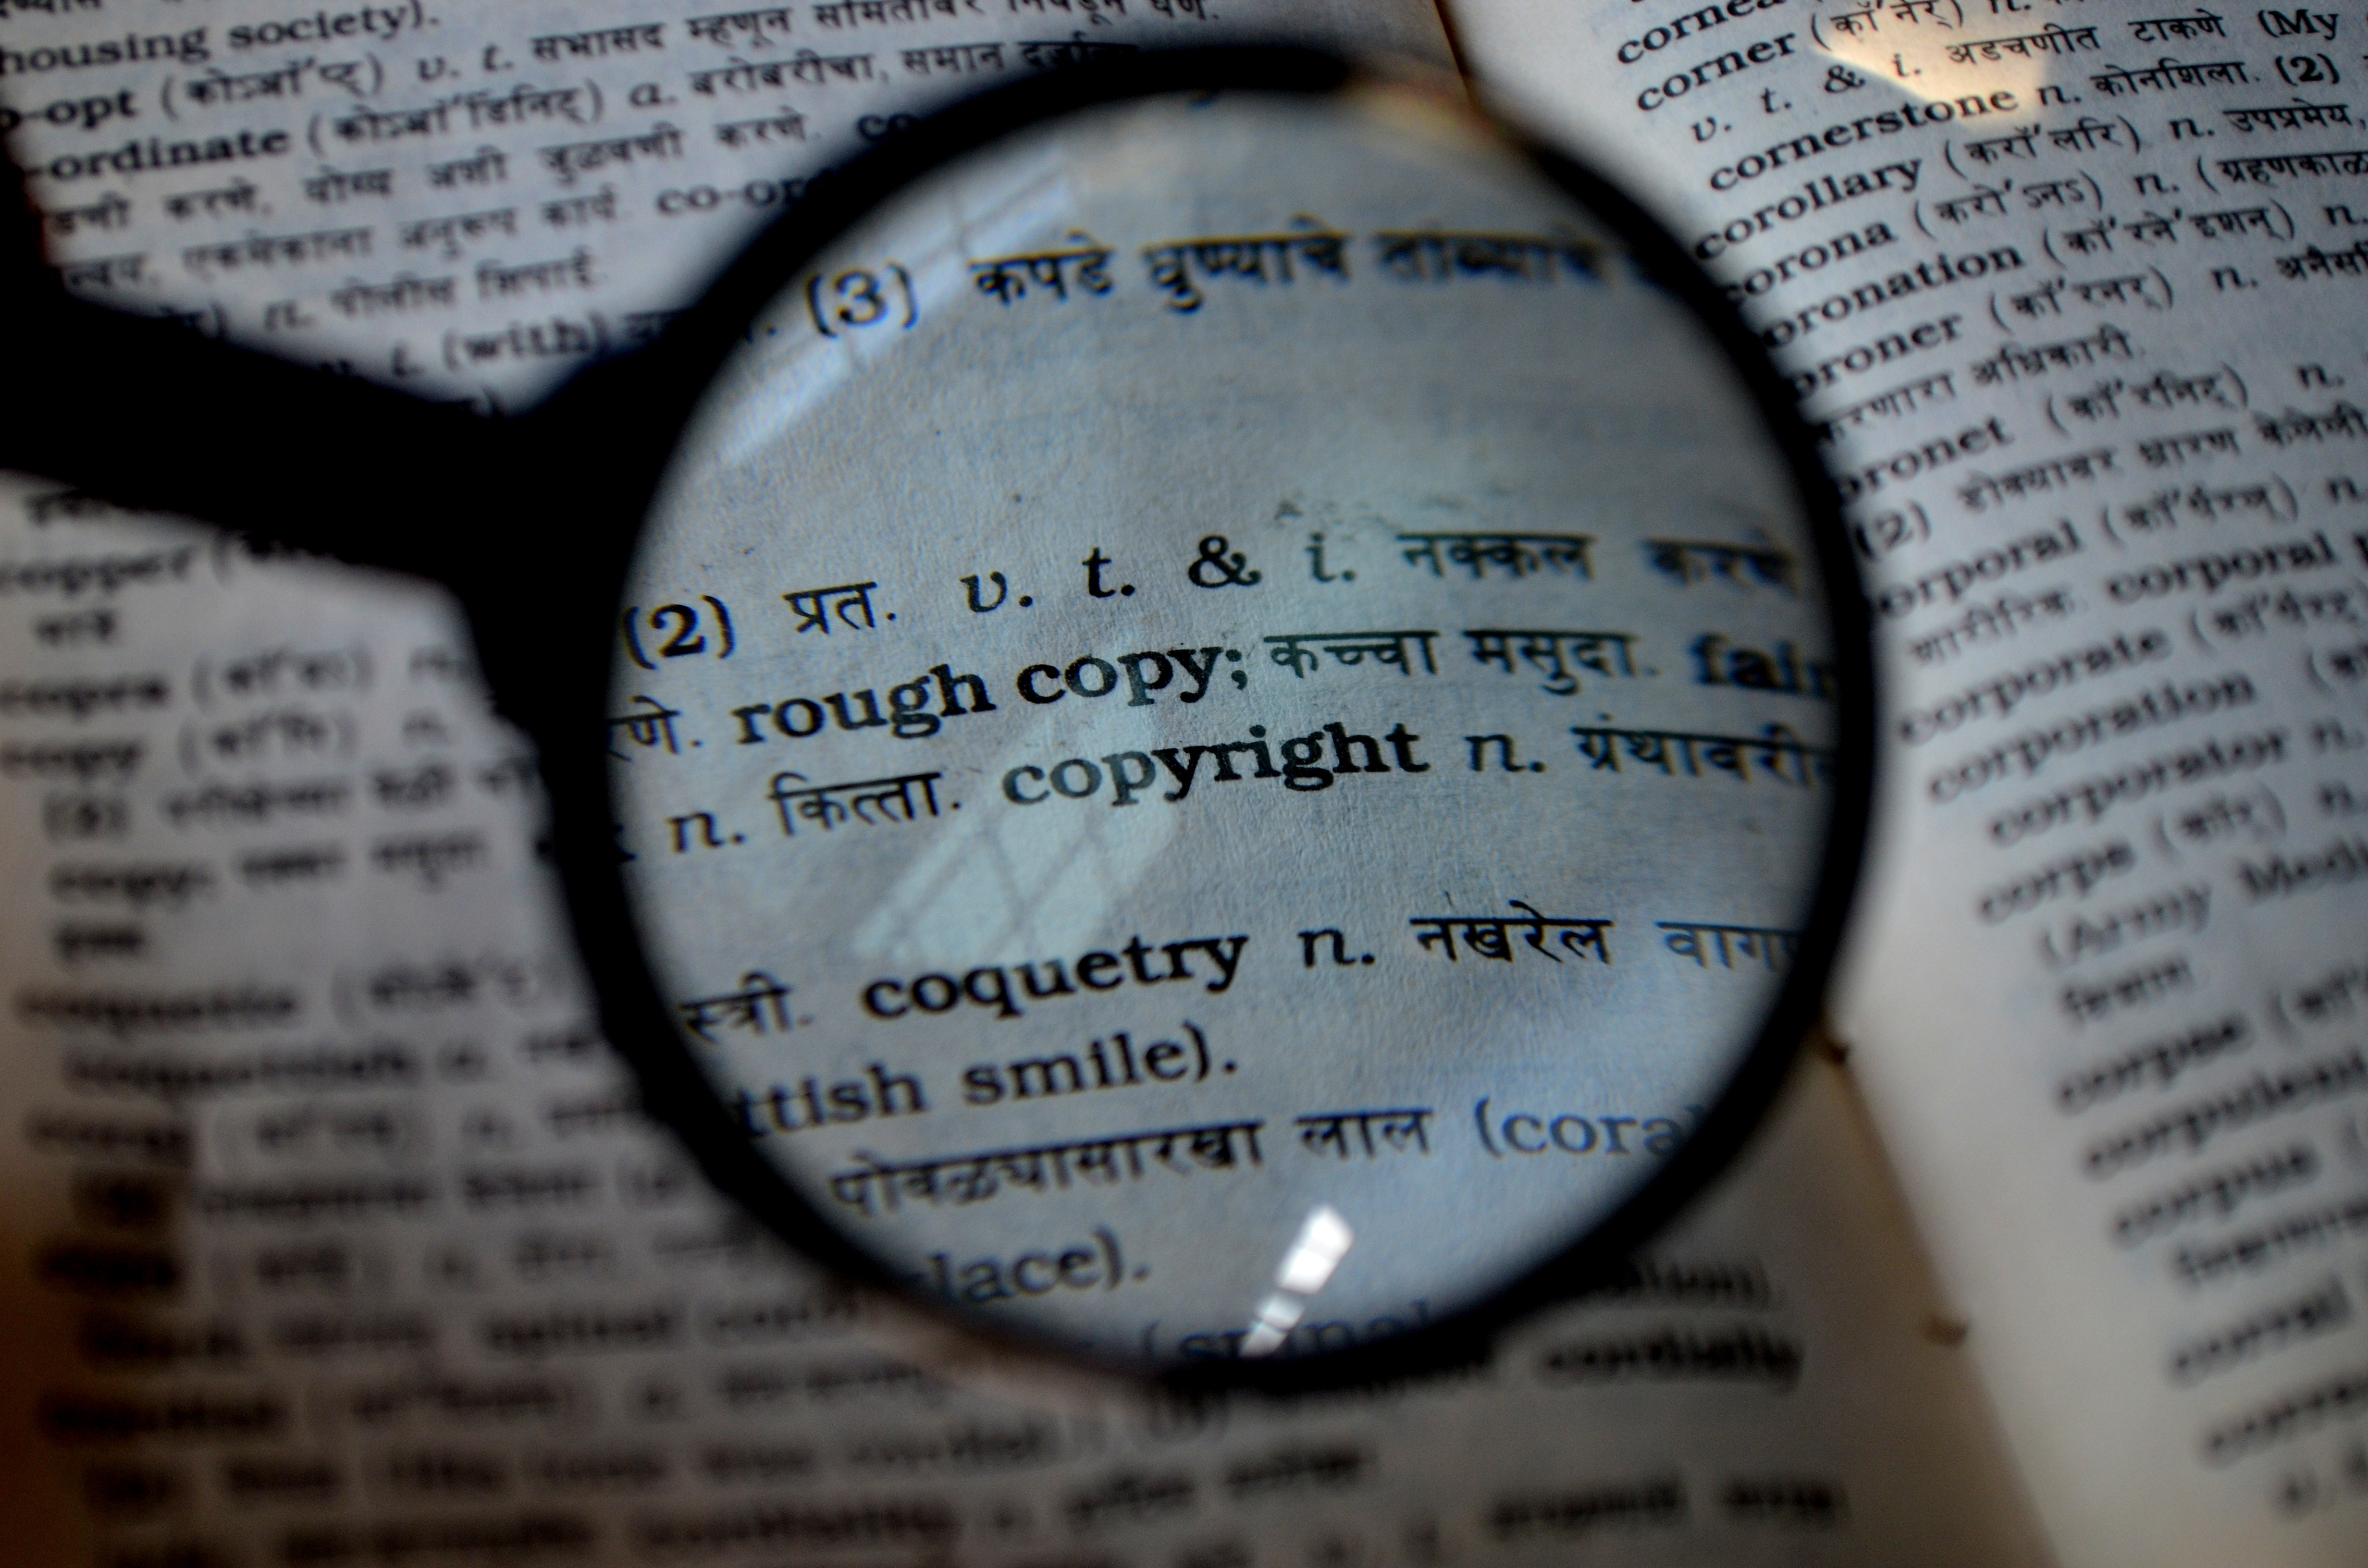 Song Lyrics & Copyright